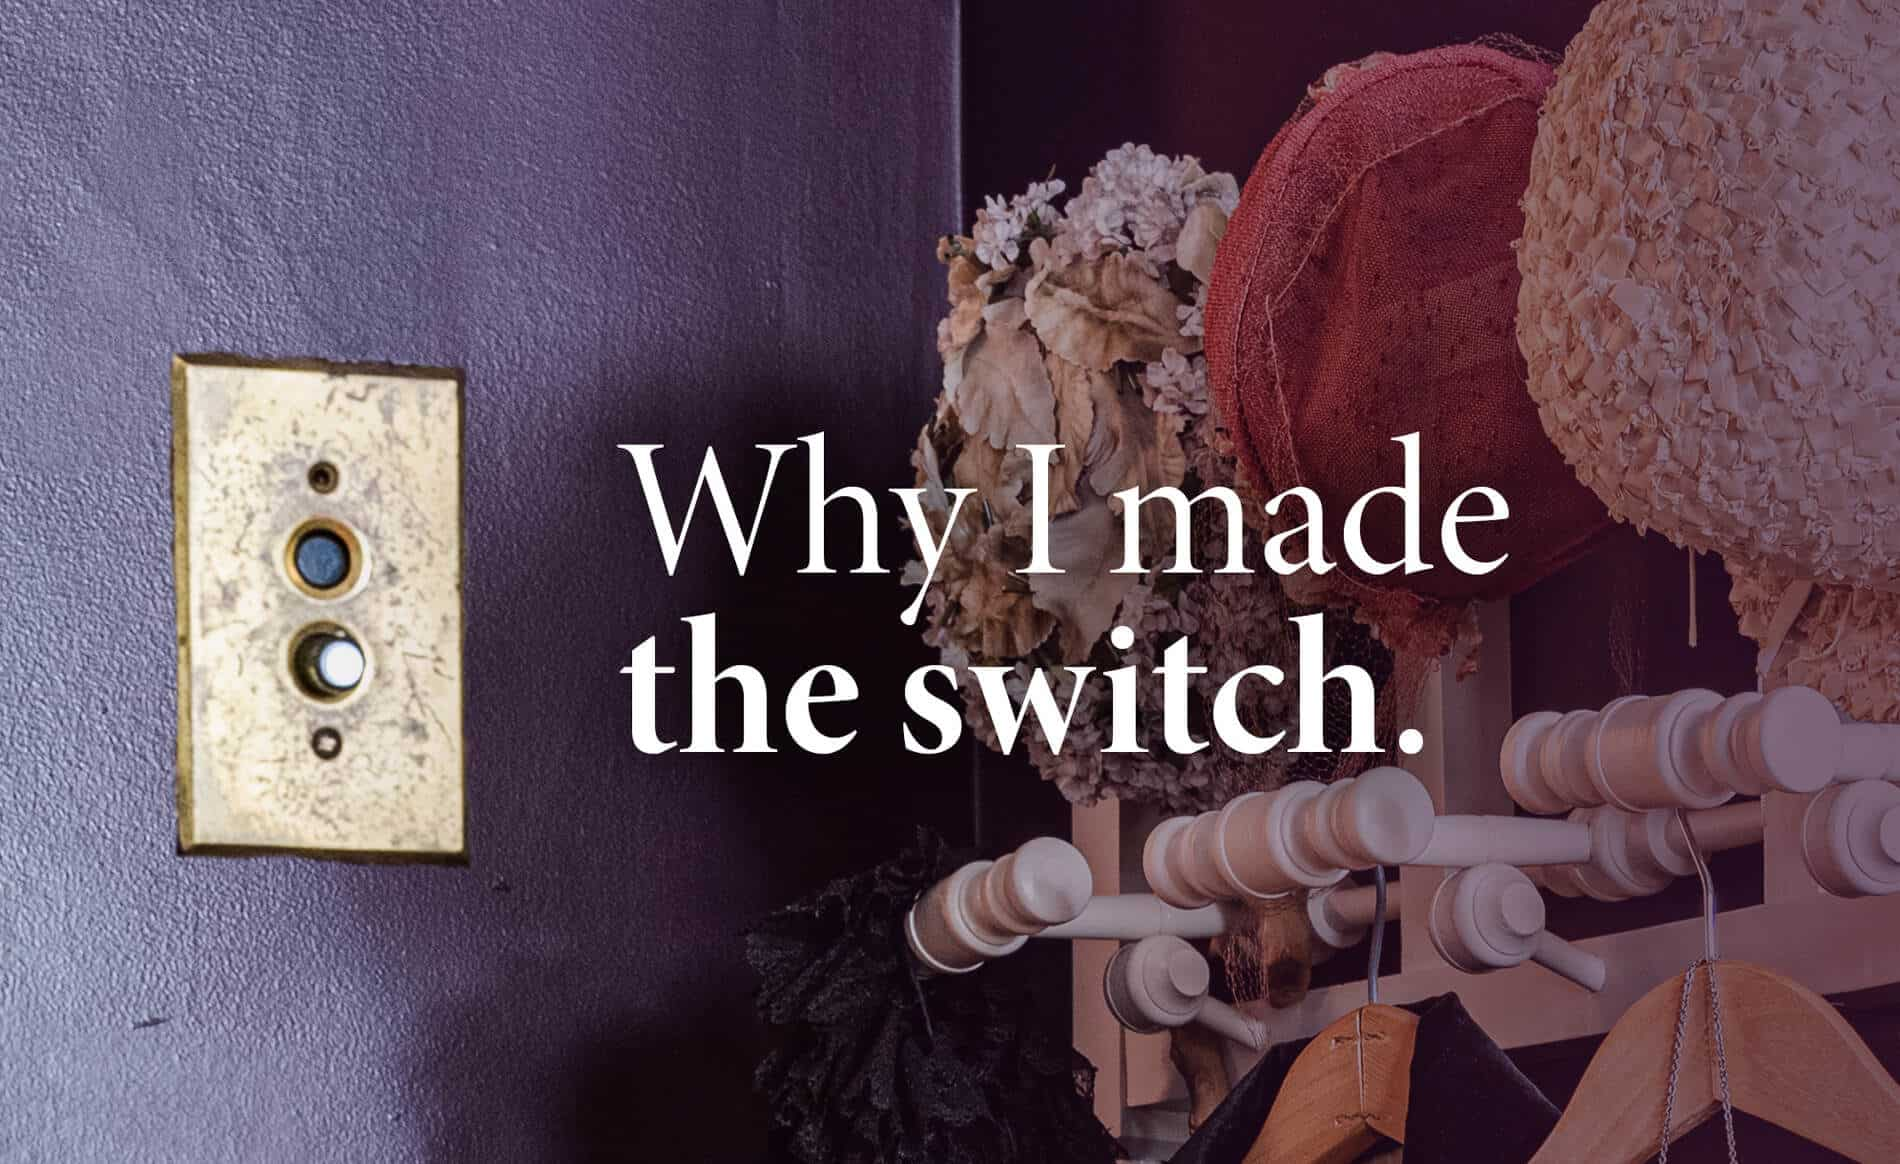 antique light switch on top of a purple wall with the text, why I made the switch